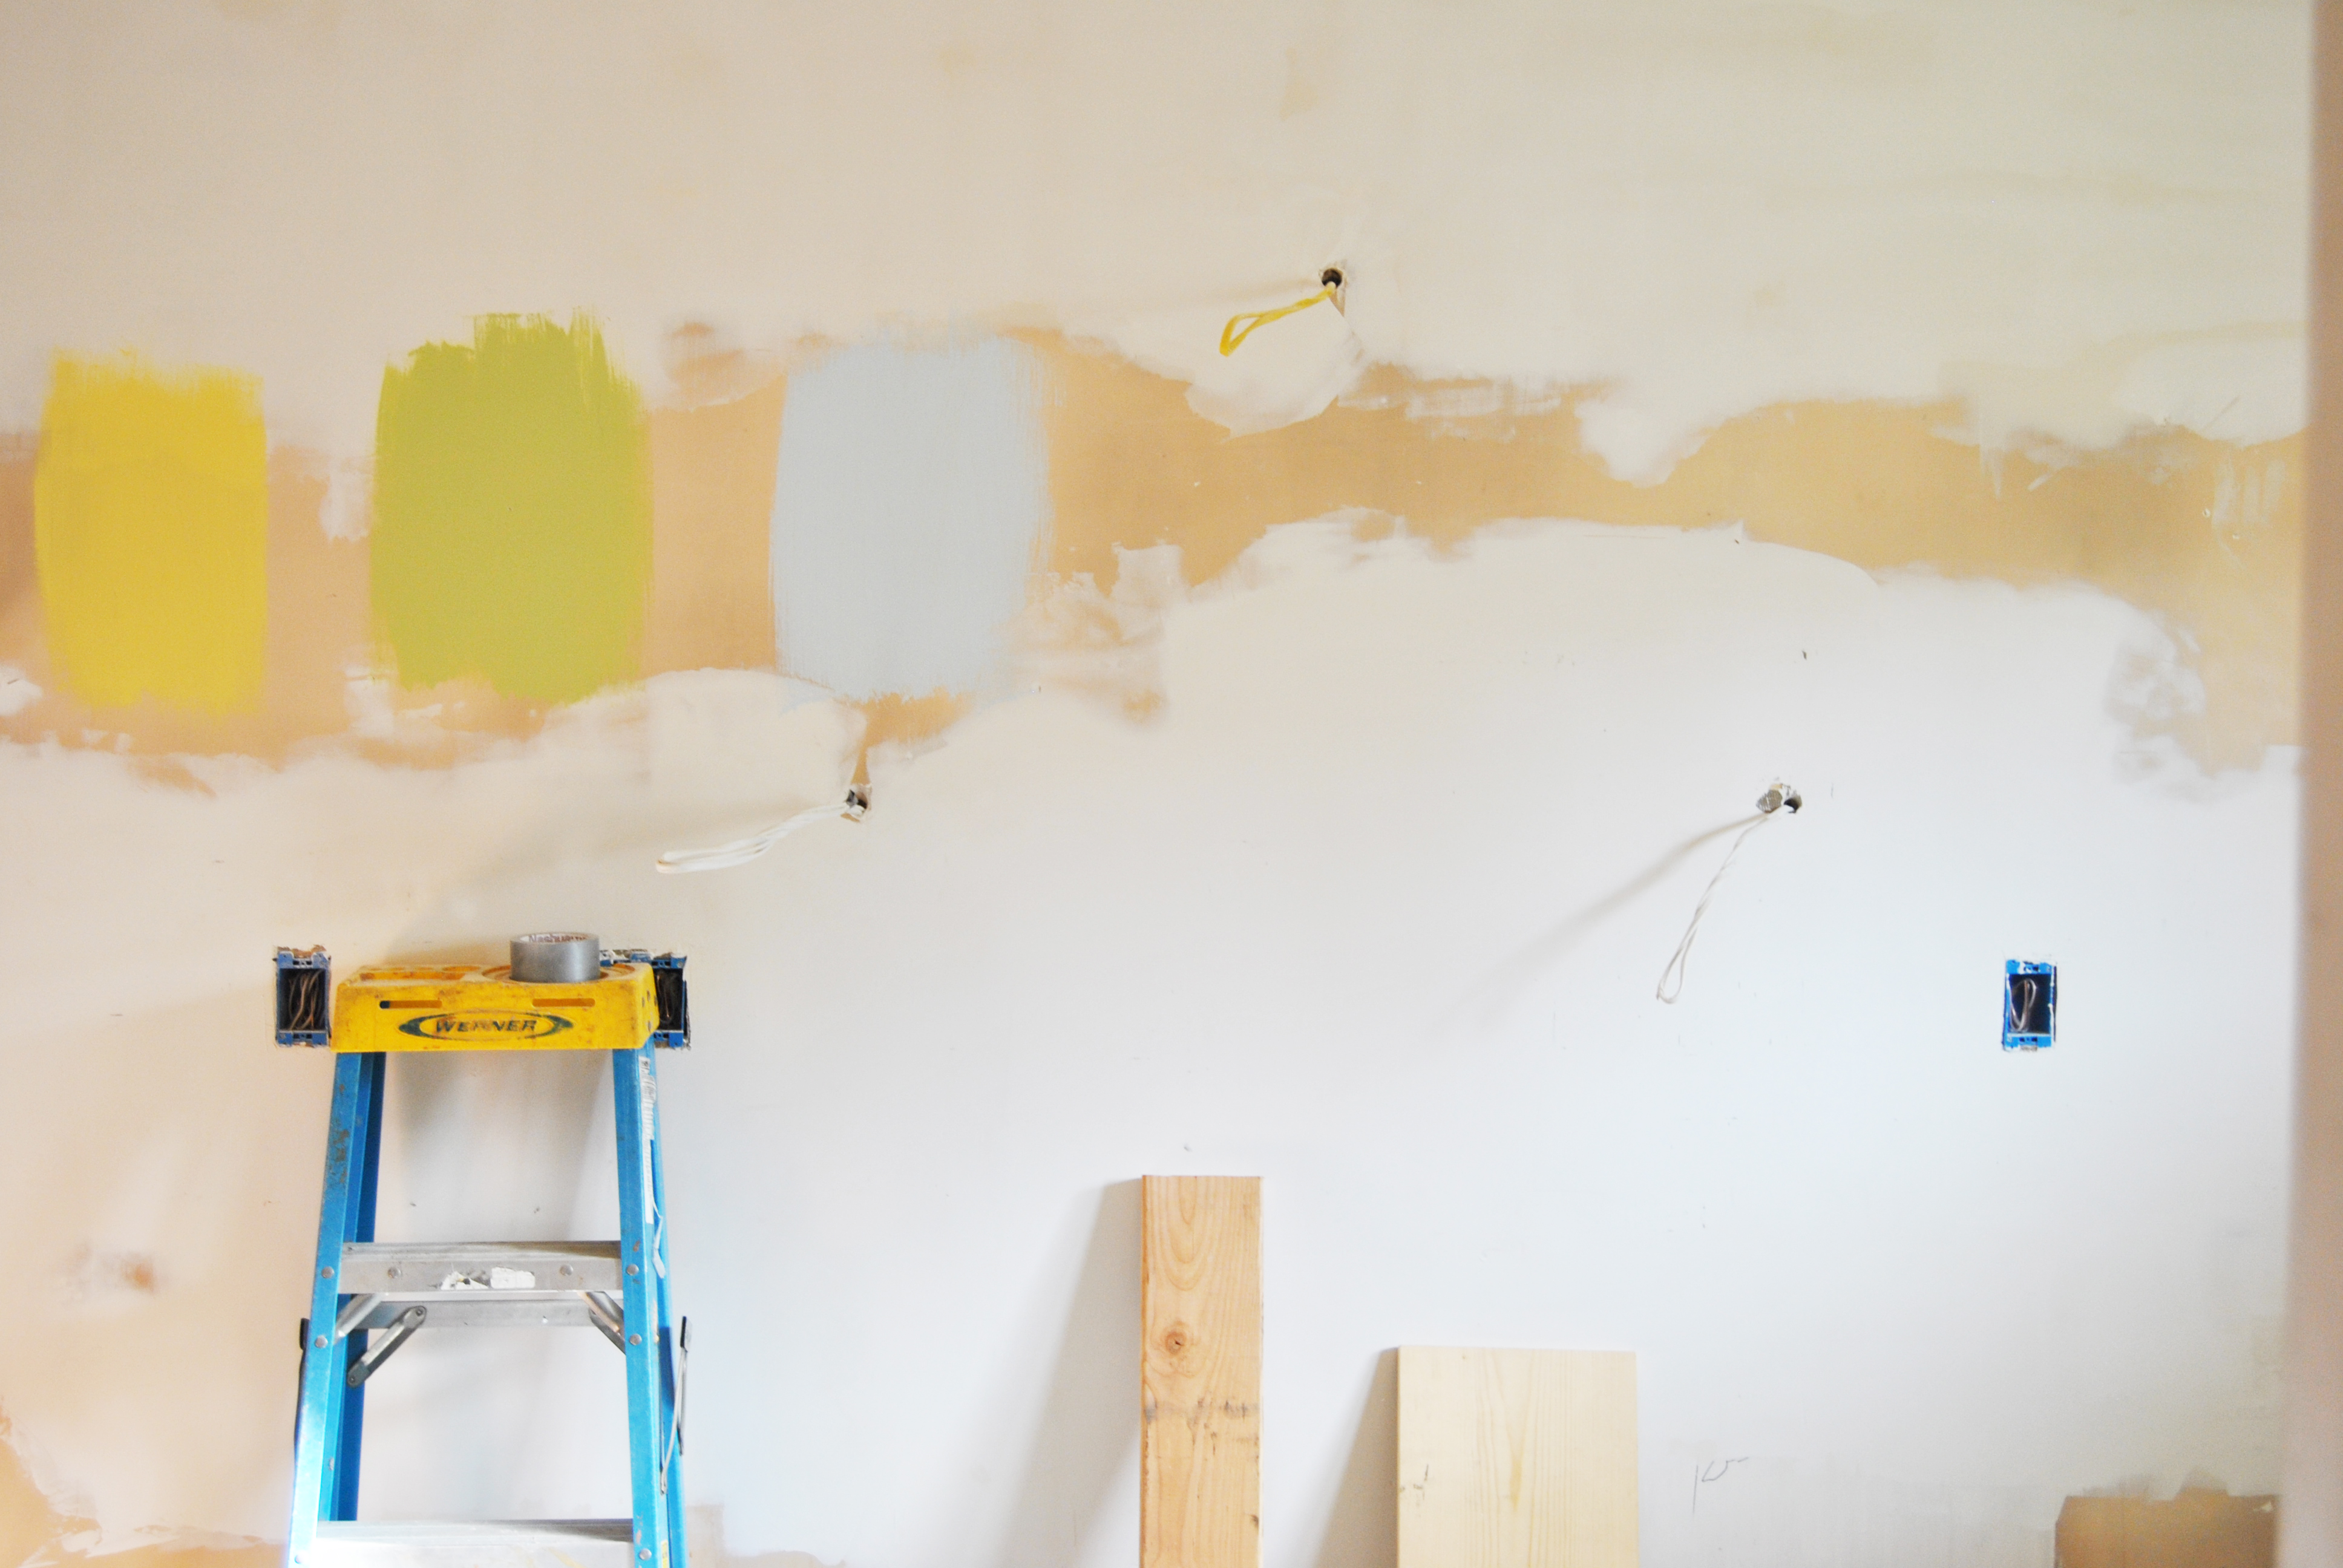 kitchen remodel, demo, drywall ready to be painted blue green or yellow?| bexbernard.com